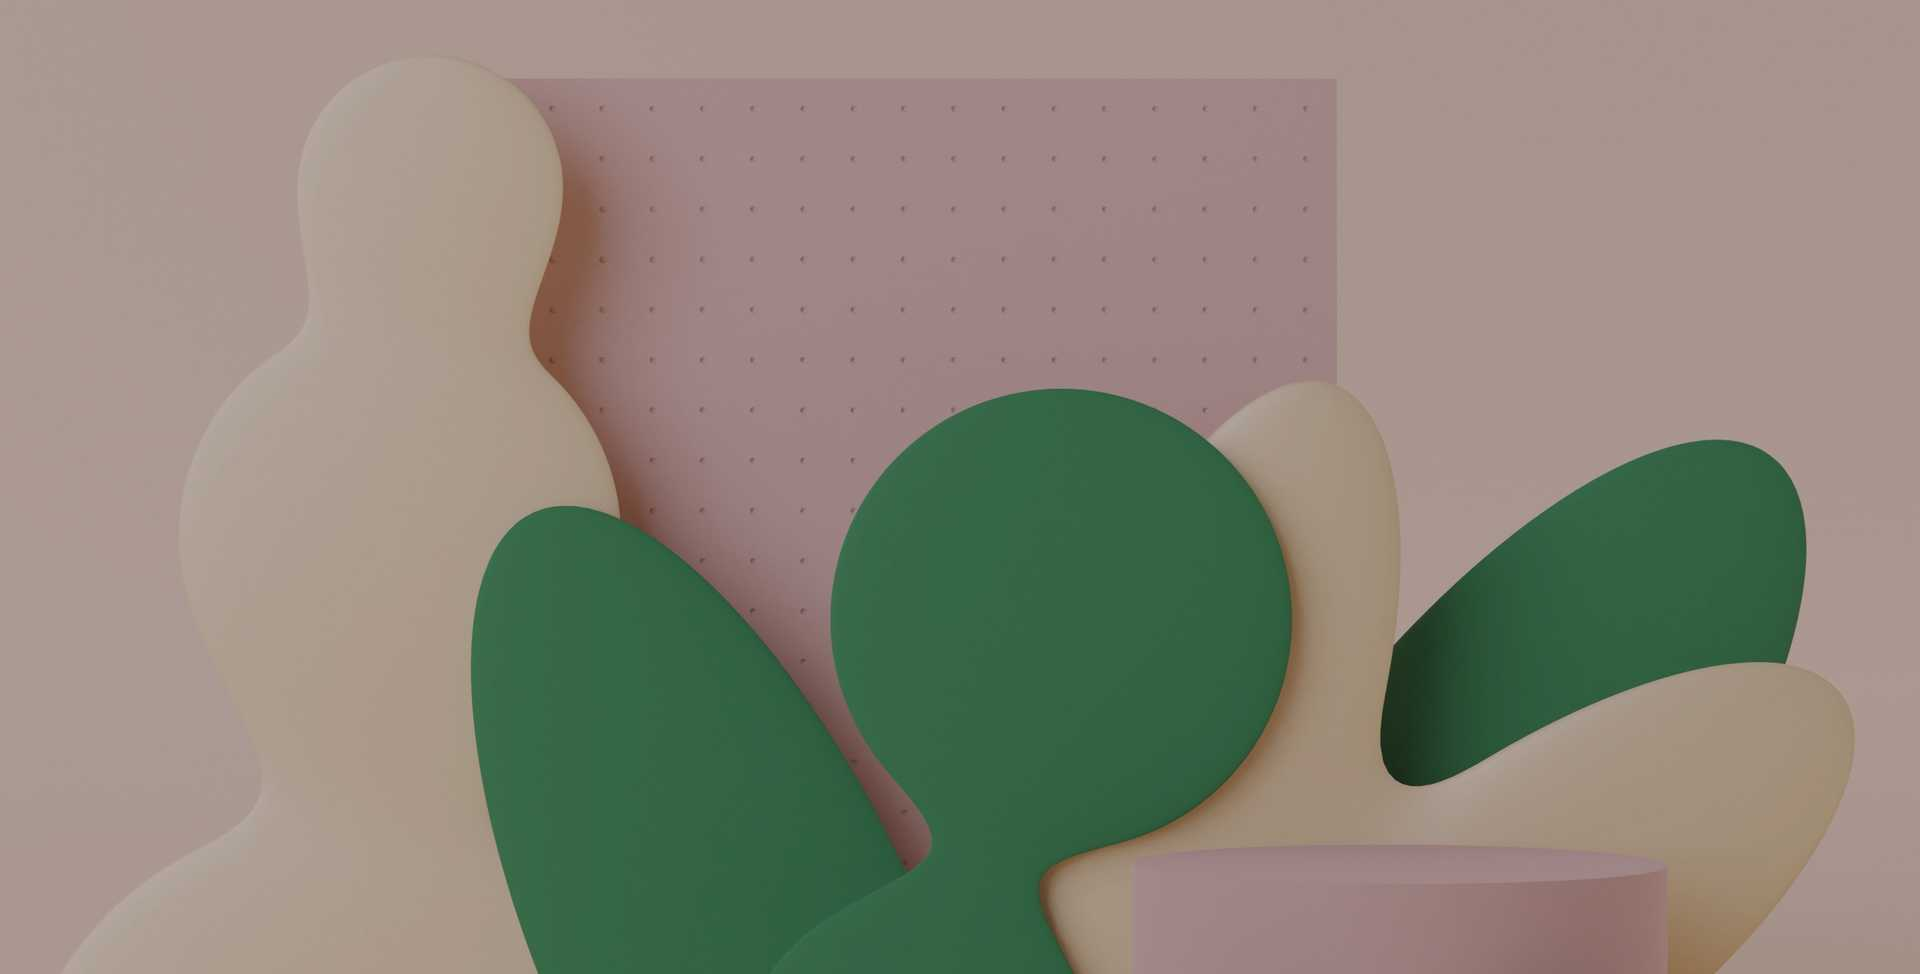 3D rendering of green and beige shapes against a beige backdrop representing a sense of calm reflection